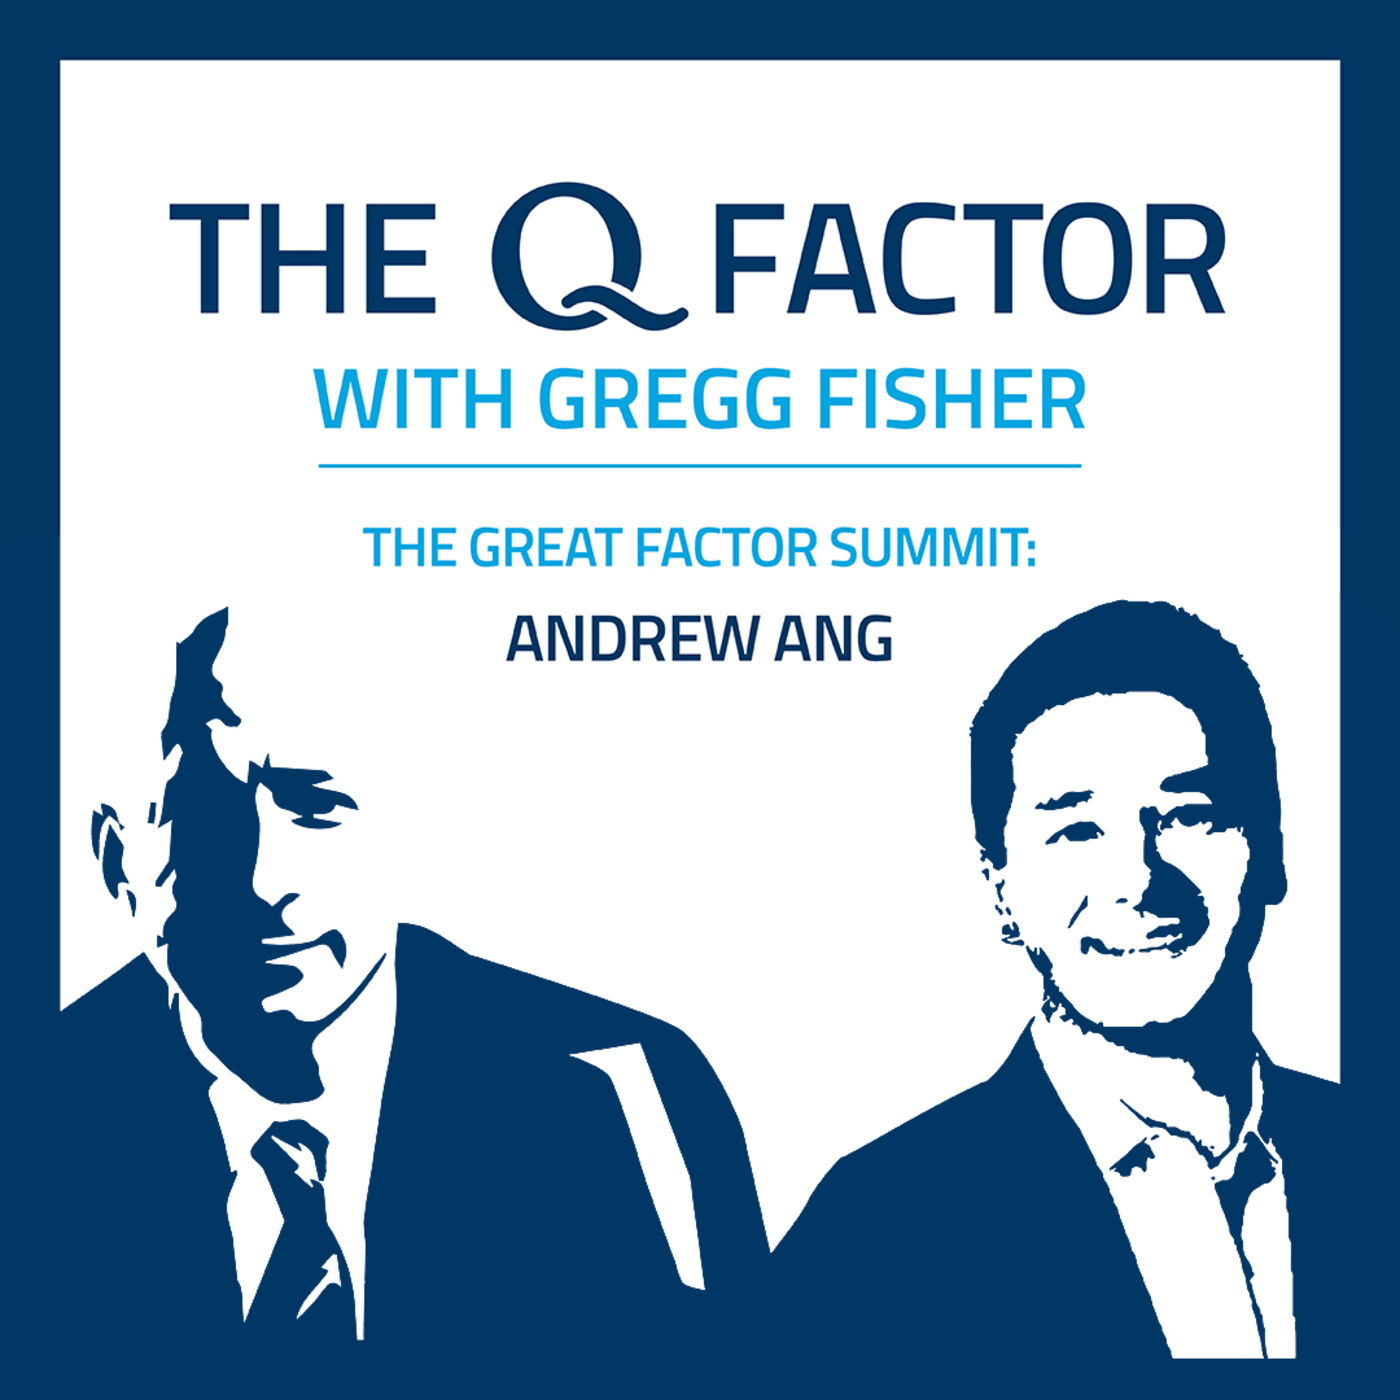 The Great Factor Summit: Gregg Fisher & Andrew Ang